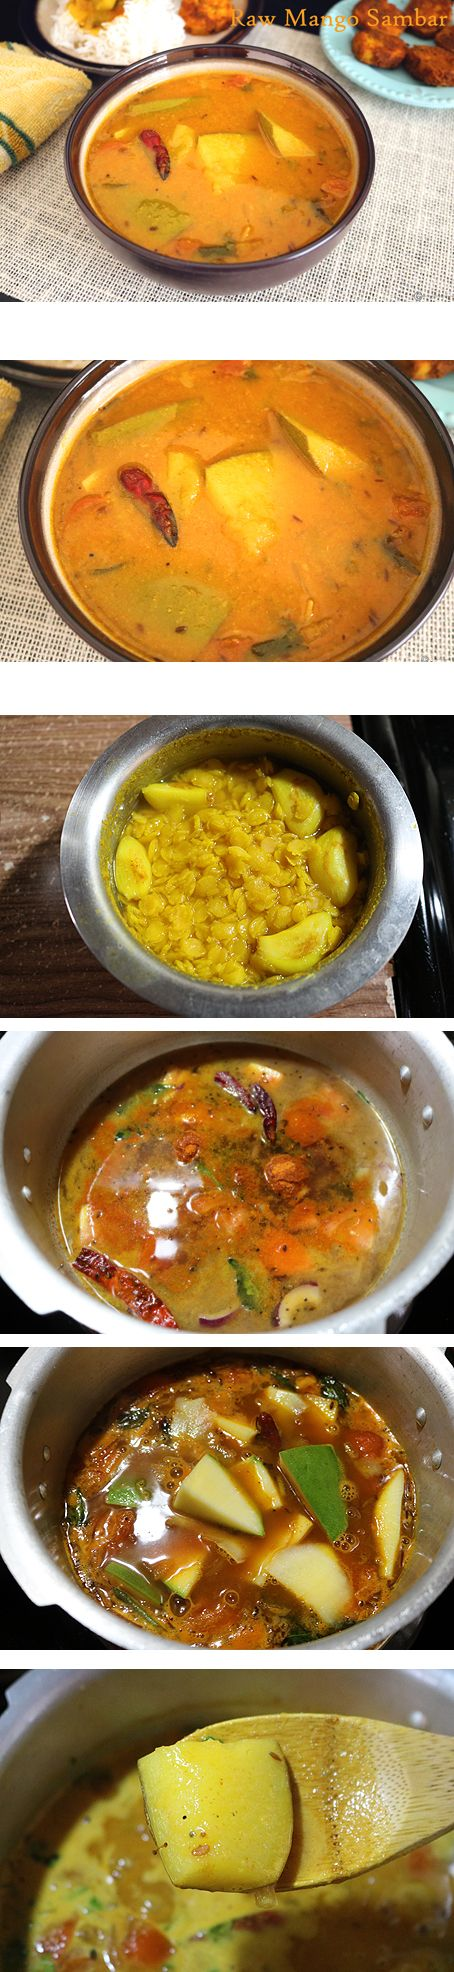 "Sambar is a healthy and delicious South Indian gravy made using toor dal, veggies and other aromatic Indian spiced. This ""Raw Mango Sambar"" is a lip smacking tangy version of a sambar using raw mangoes which are very tender and tasty after cooking. Perfect with white rice and a spicy veggie on the side."